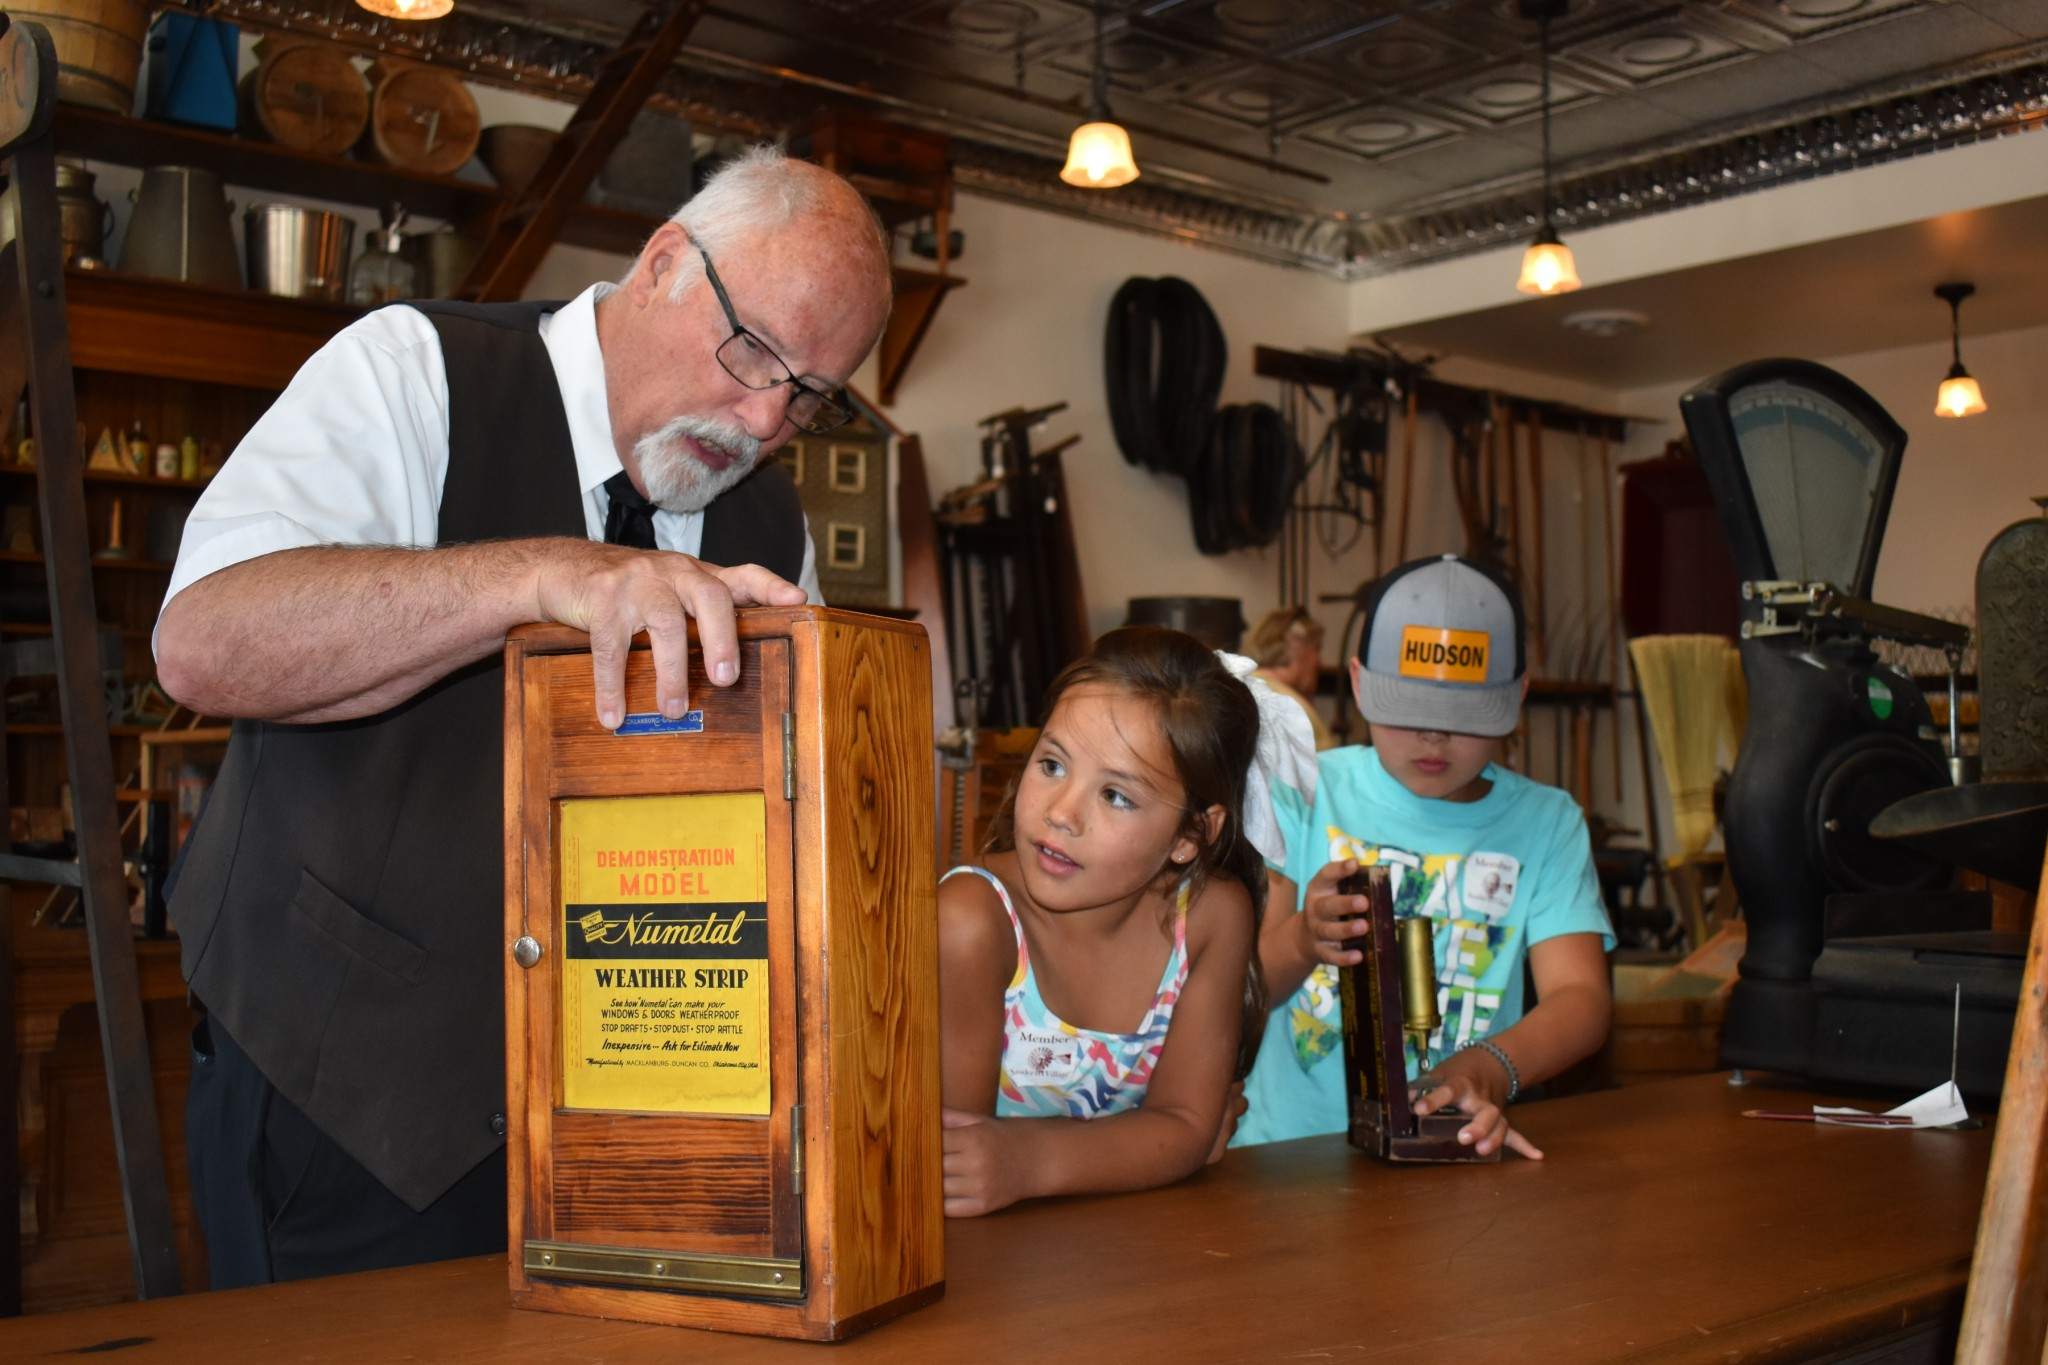 Homeschool families are invited to have fun learning about history, crafts and science at Sauder Village Homeschool Days, set for Sept. 8-11. (Photo courtesy of Sauder Village)